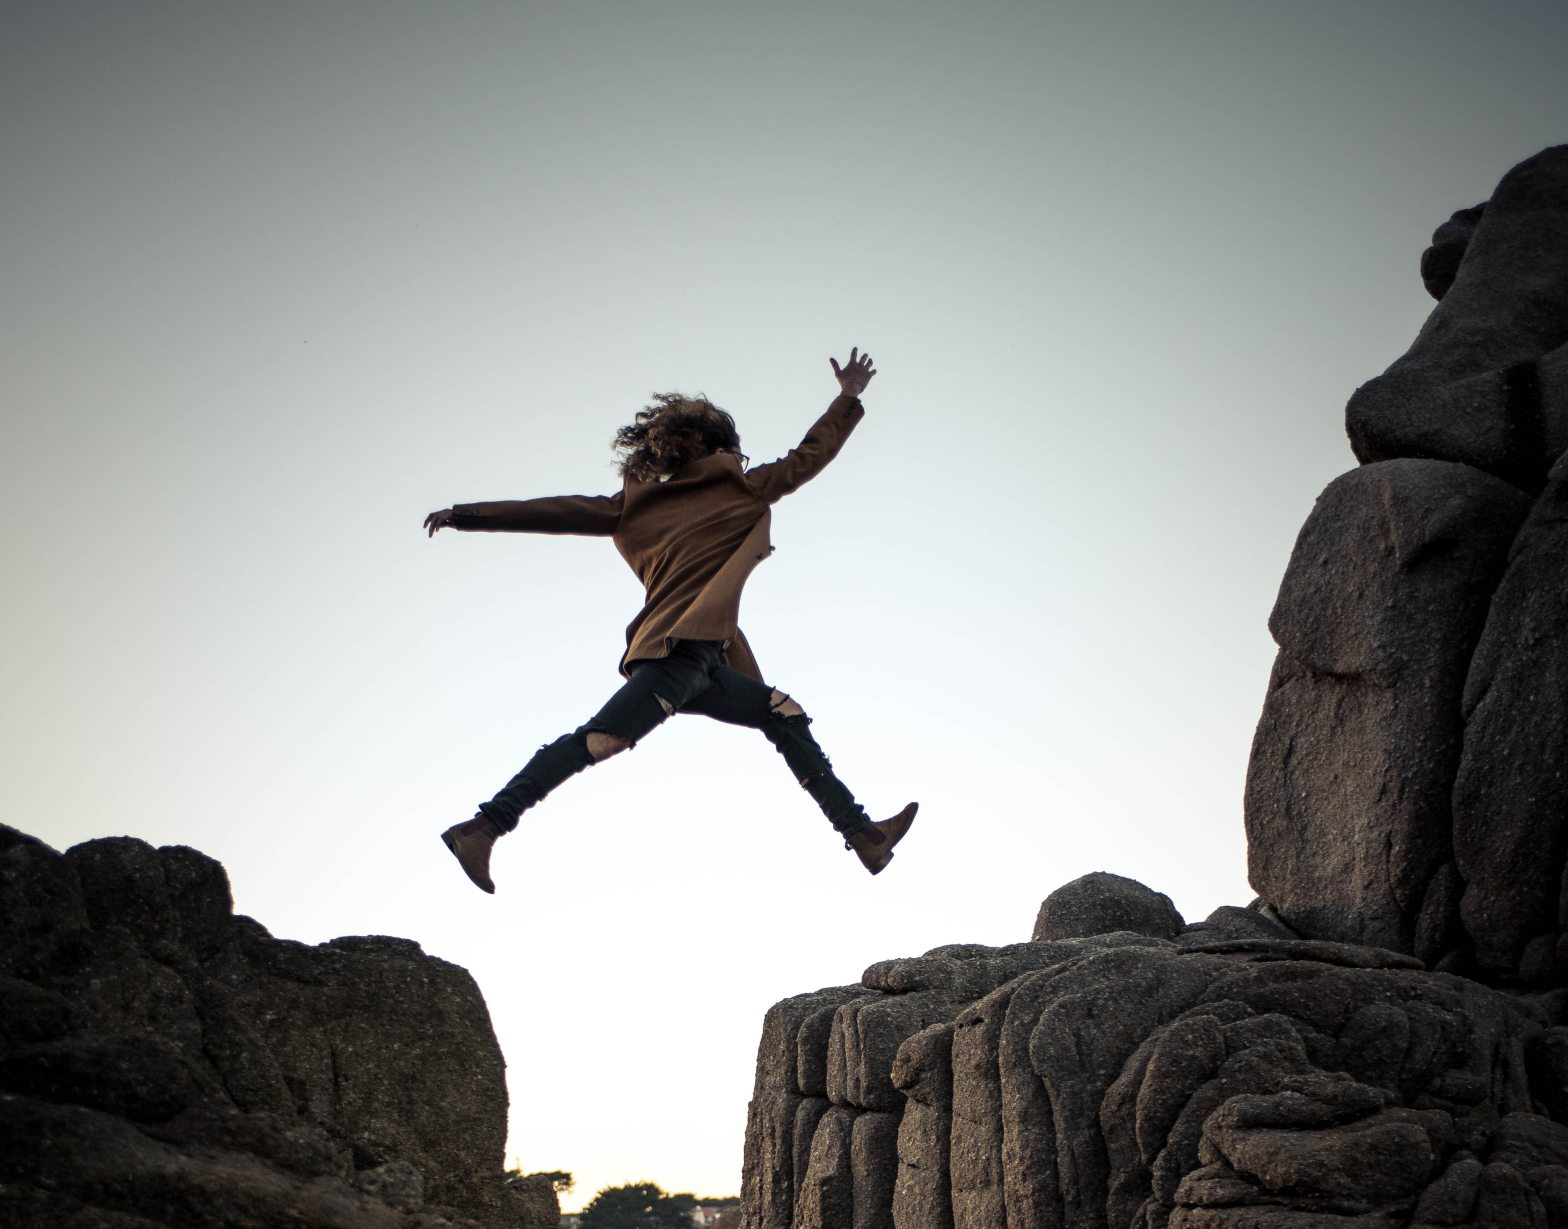 woman jumping over gap with courage